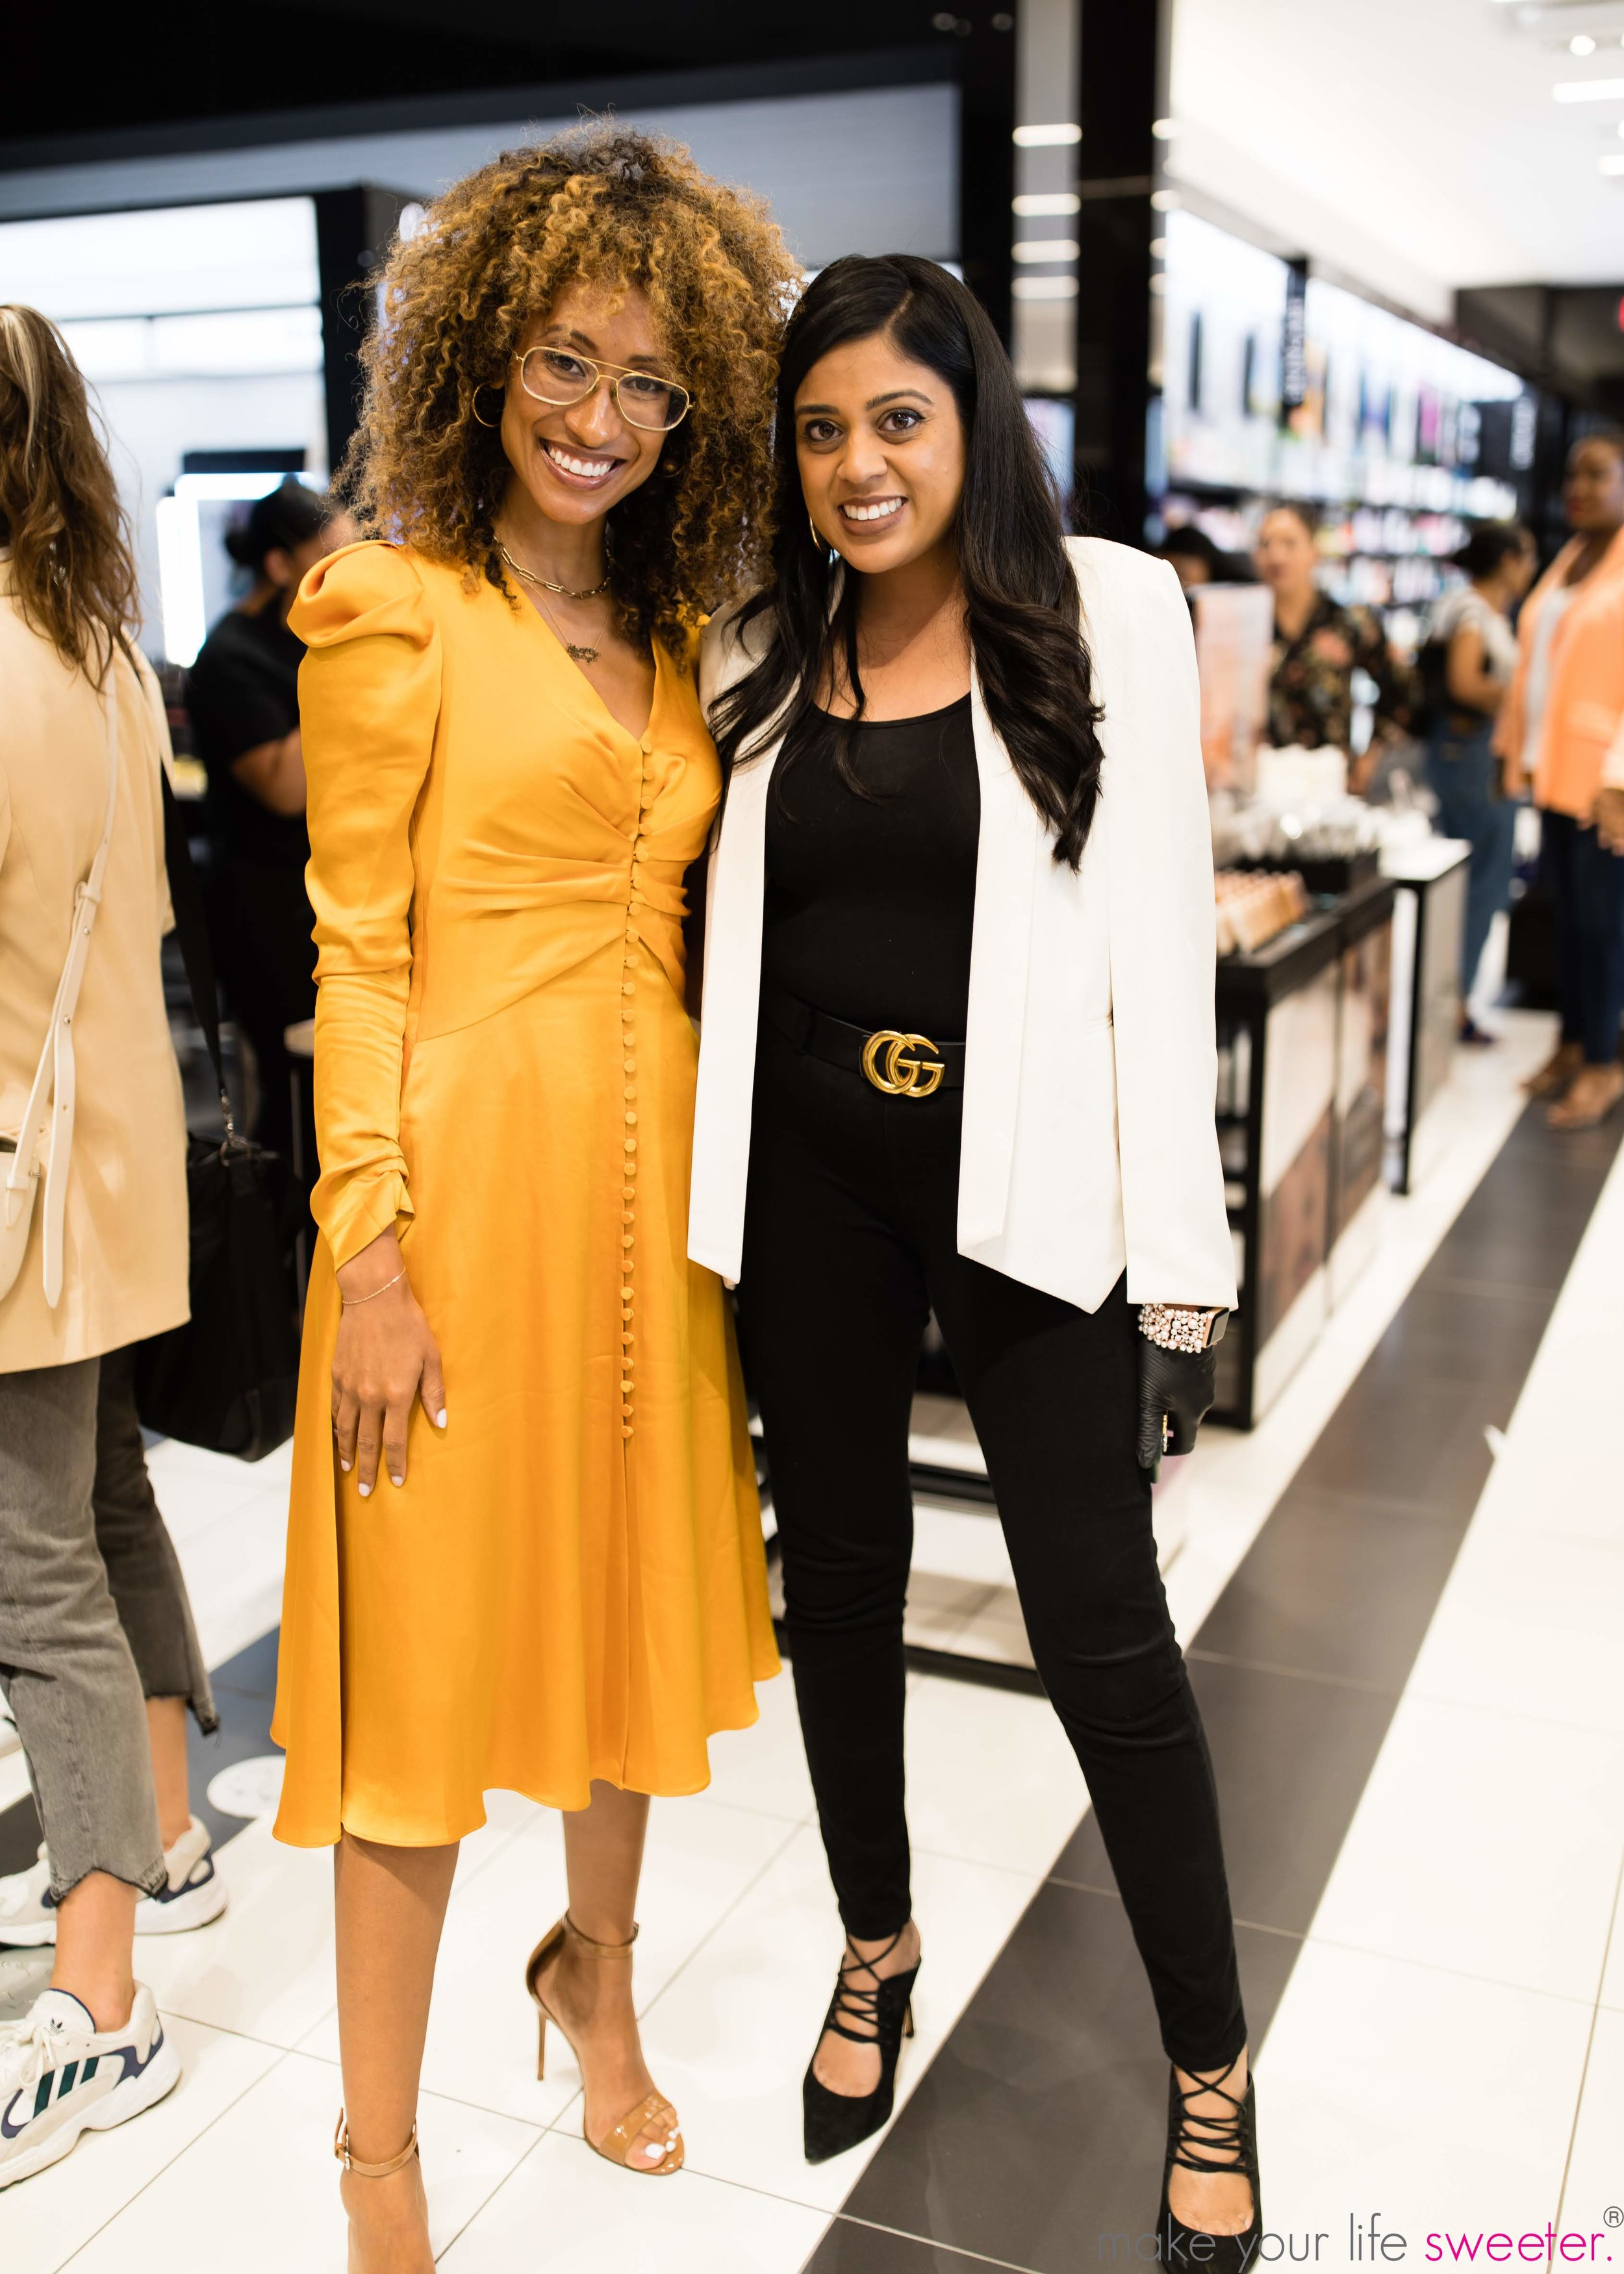 Make Your Life Sweeter Events - Yasmeen Tadia with Elaine Welteroth - Sephora Hudson Yards Event - August 16,2019